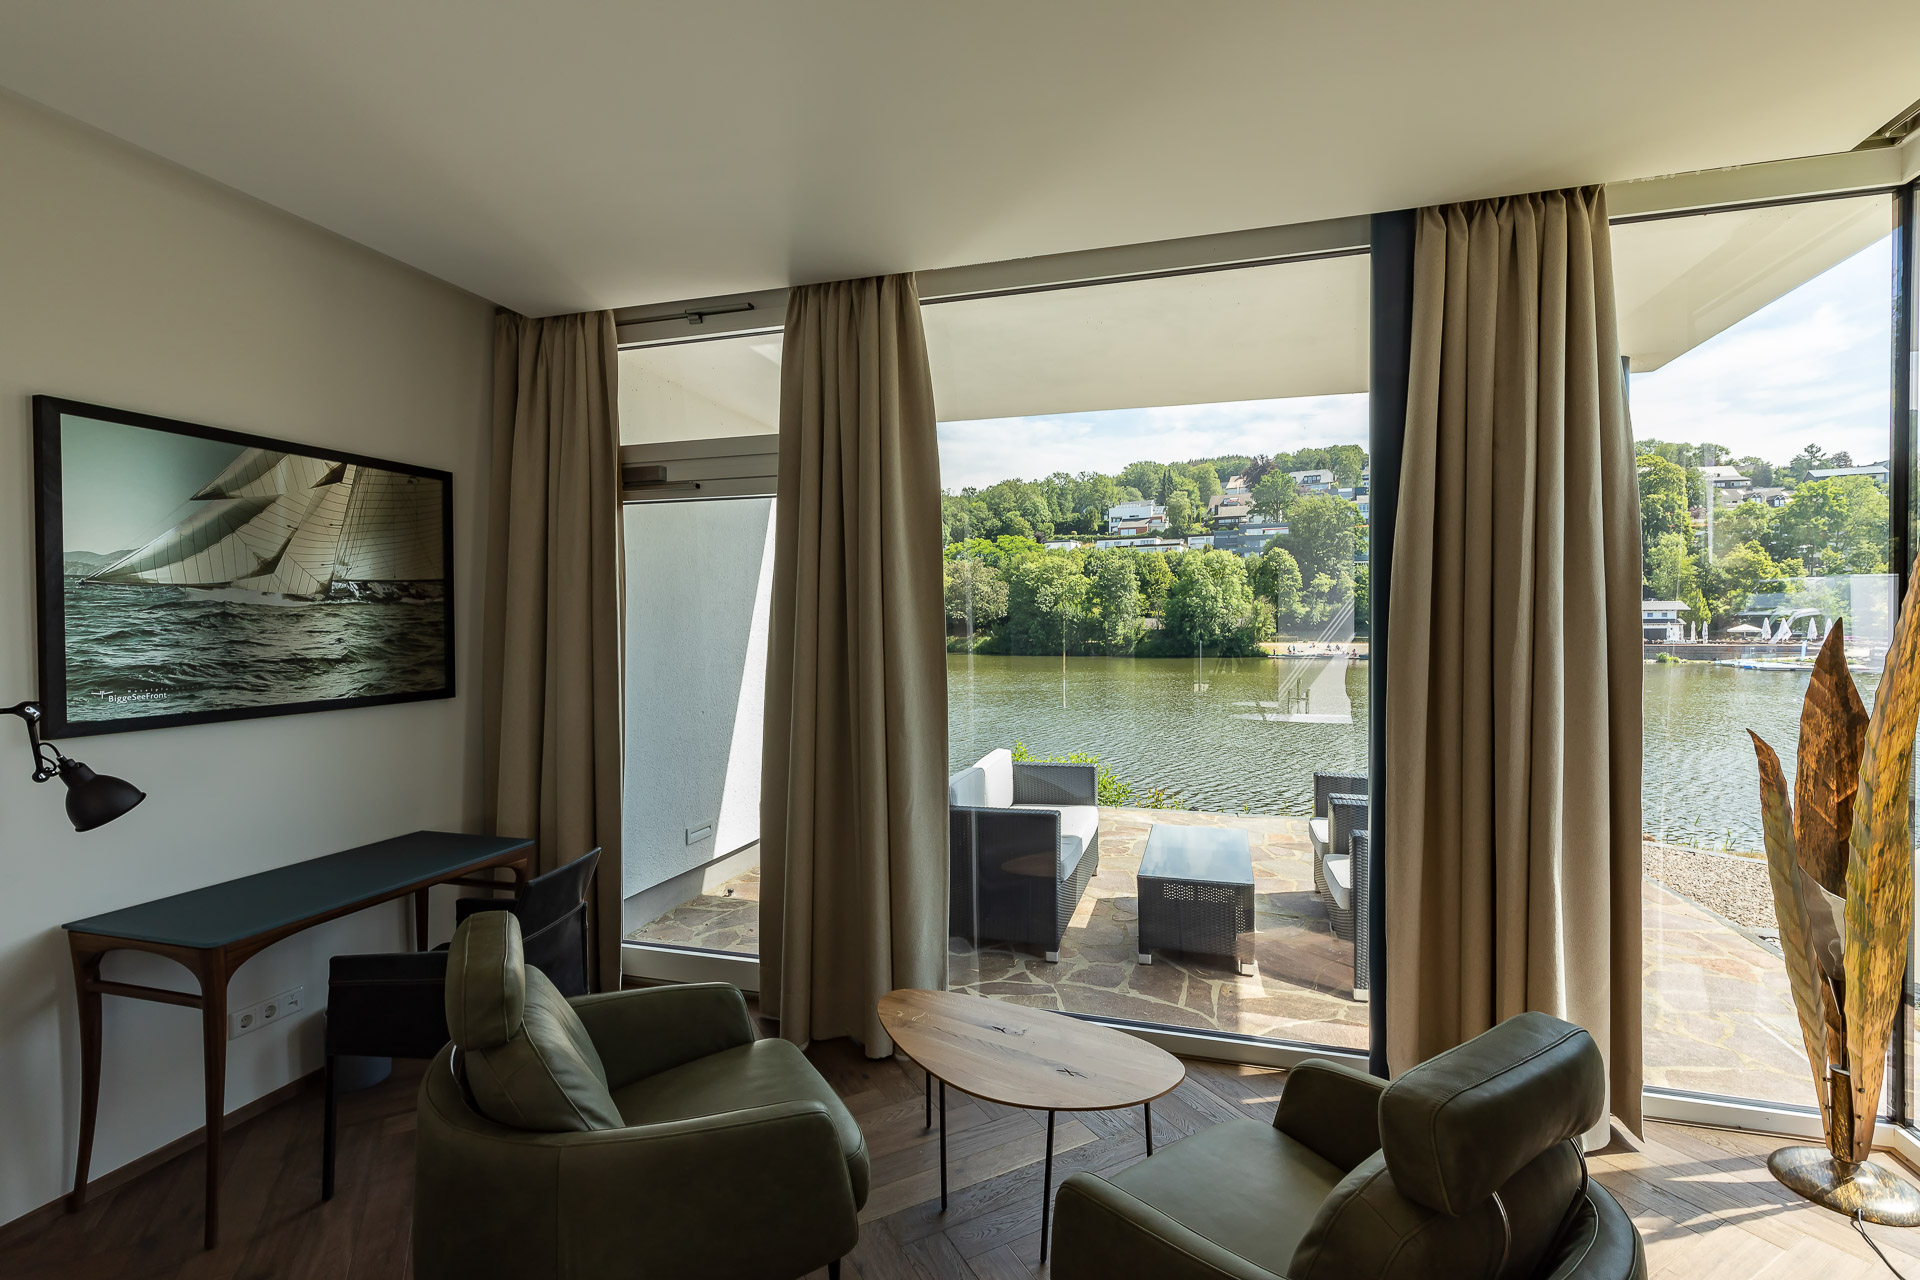 MotelplusHotel BiggeSeefront DeluJuniorSuitexe Zimmer